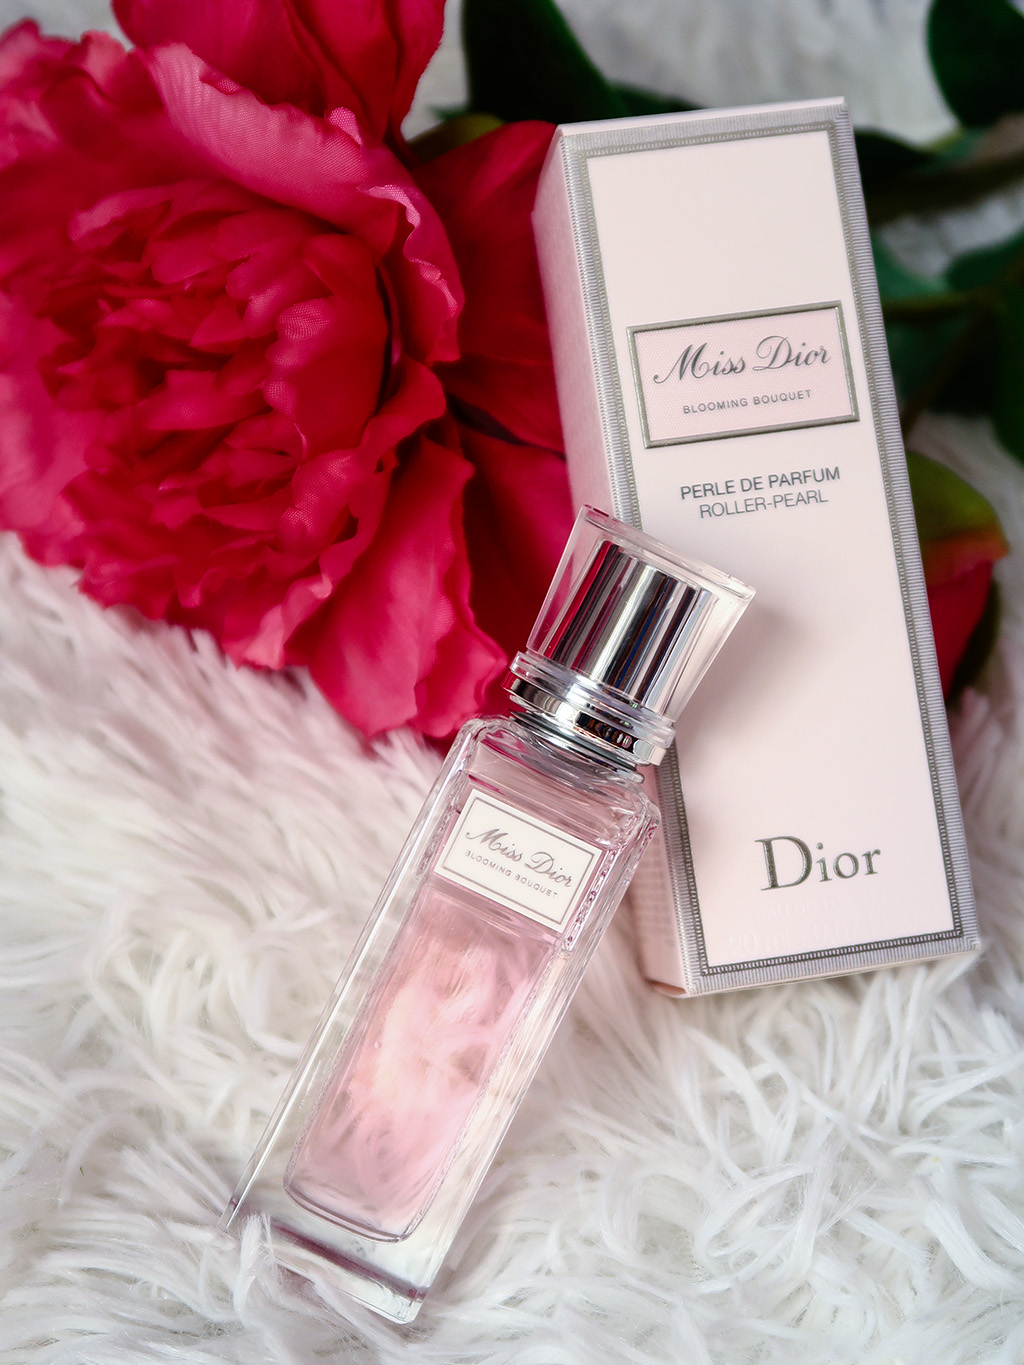 notino miss dior blooming bouquet parfum roll-on